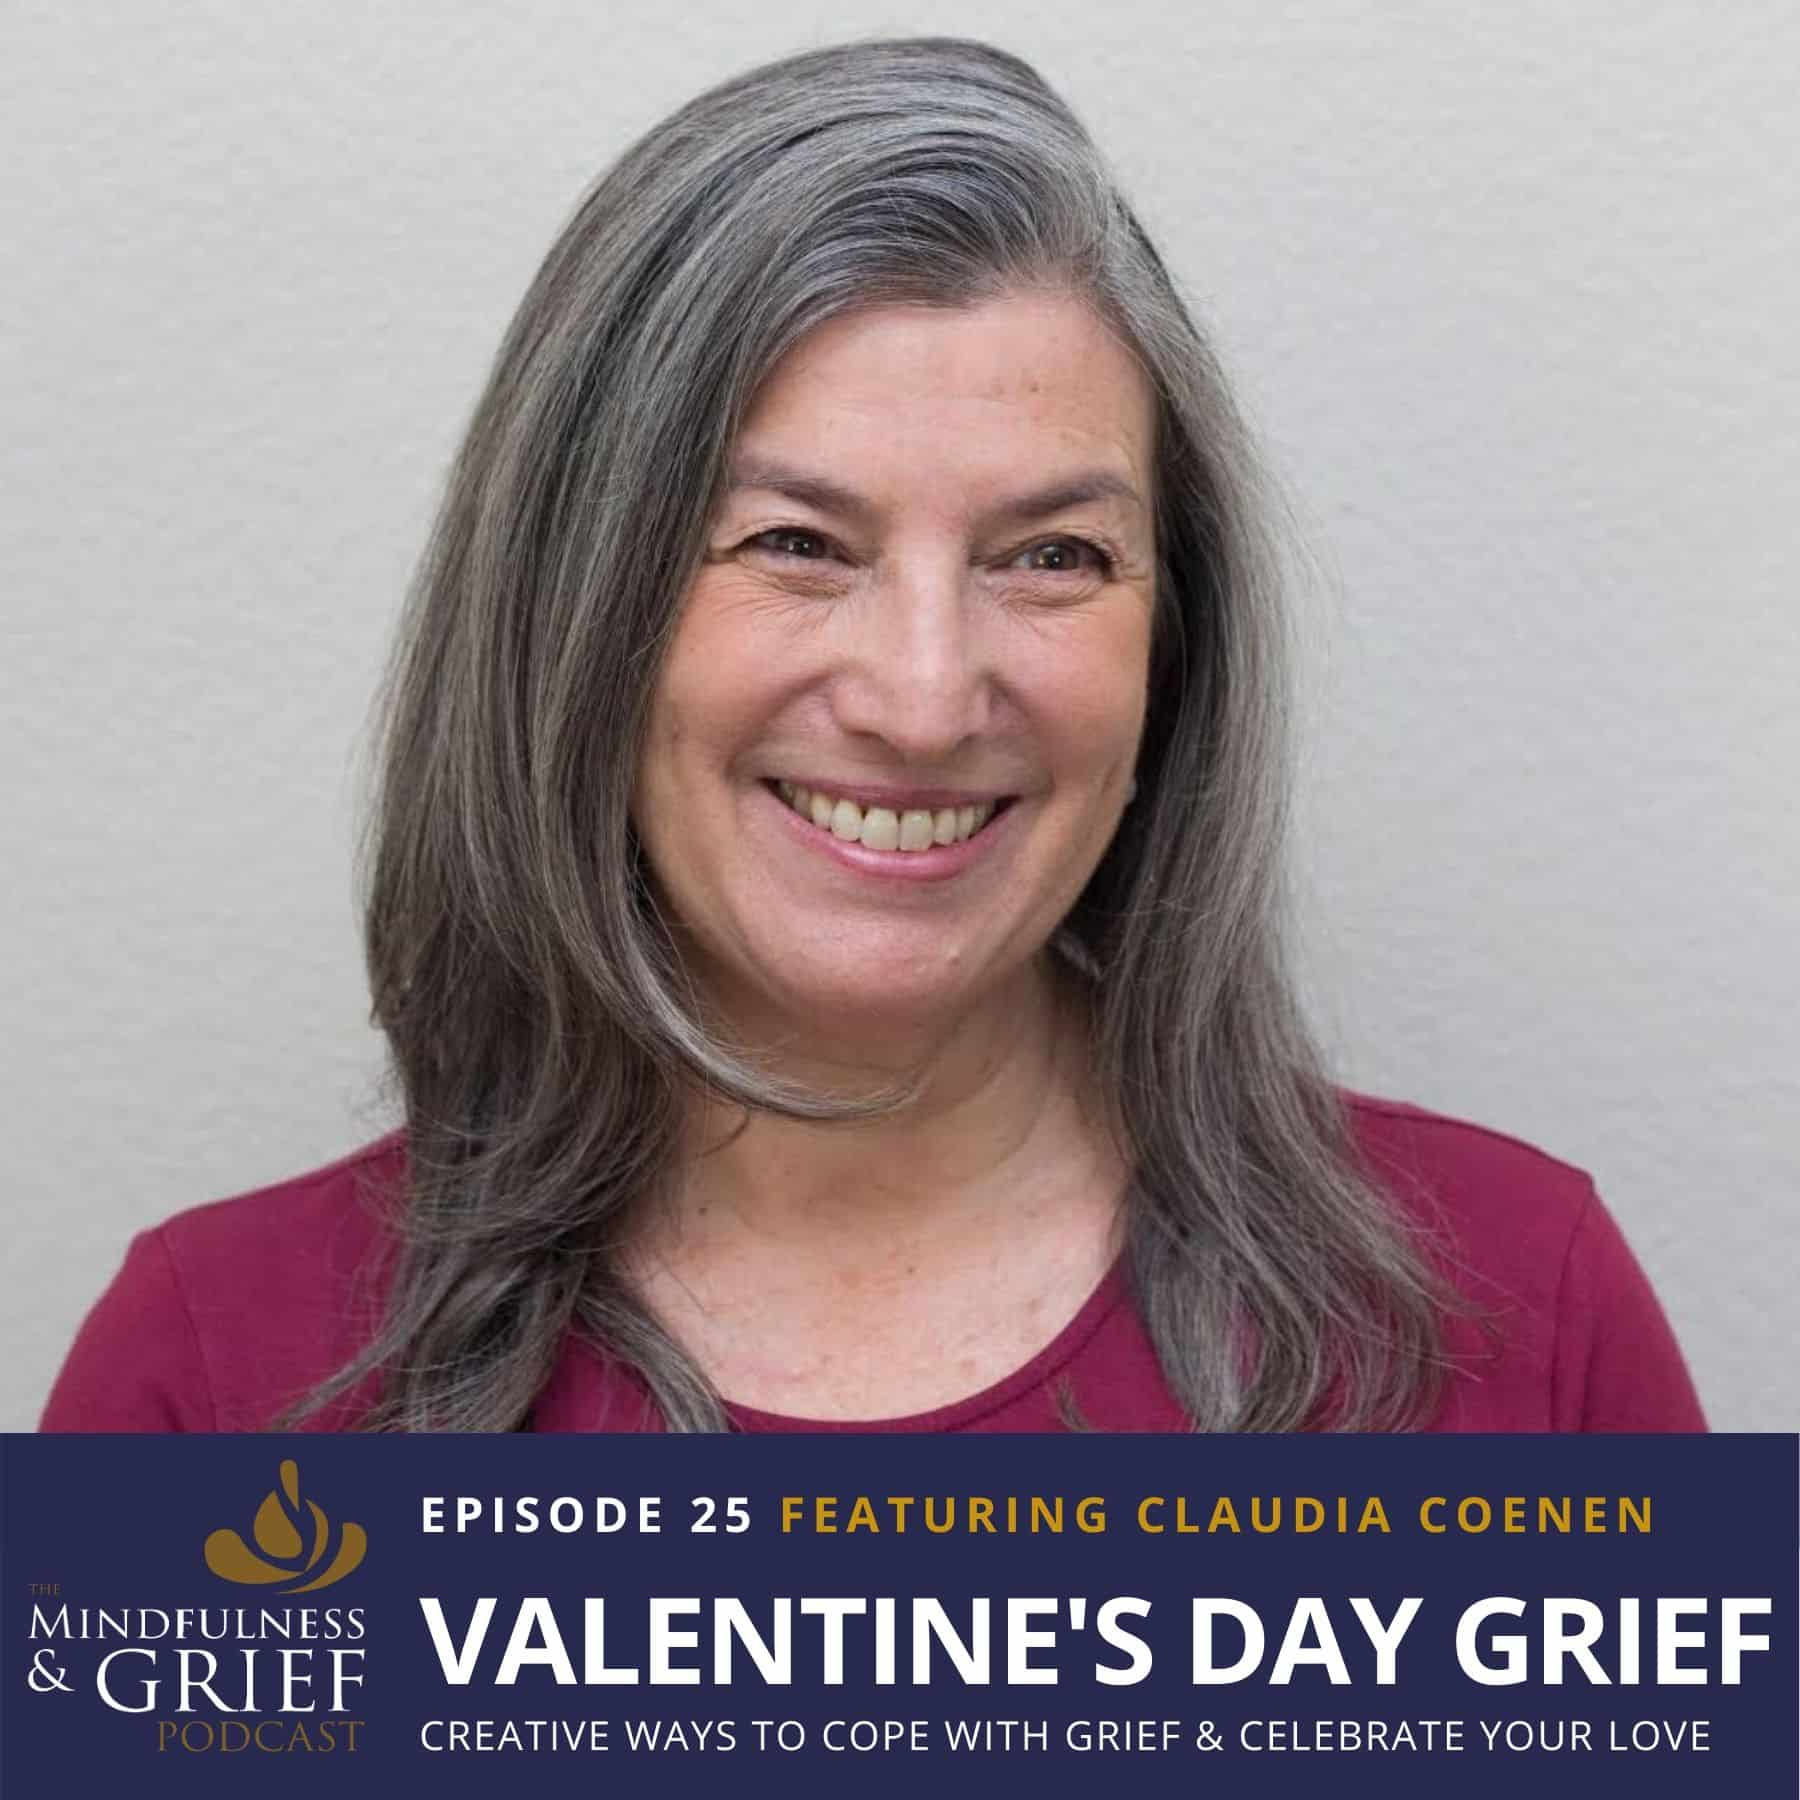 valentines day grief mindfulness grief podcast 25 claudia coenen